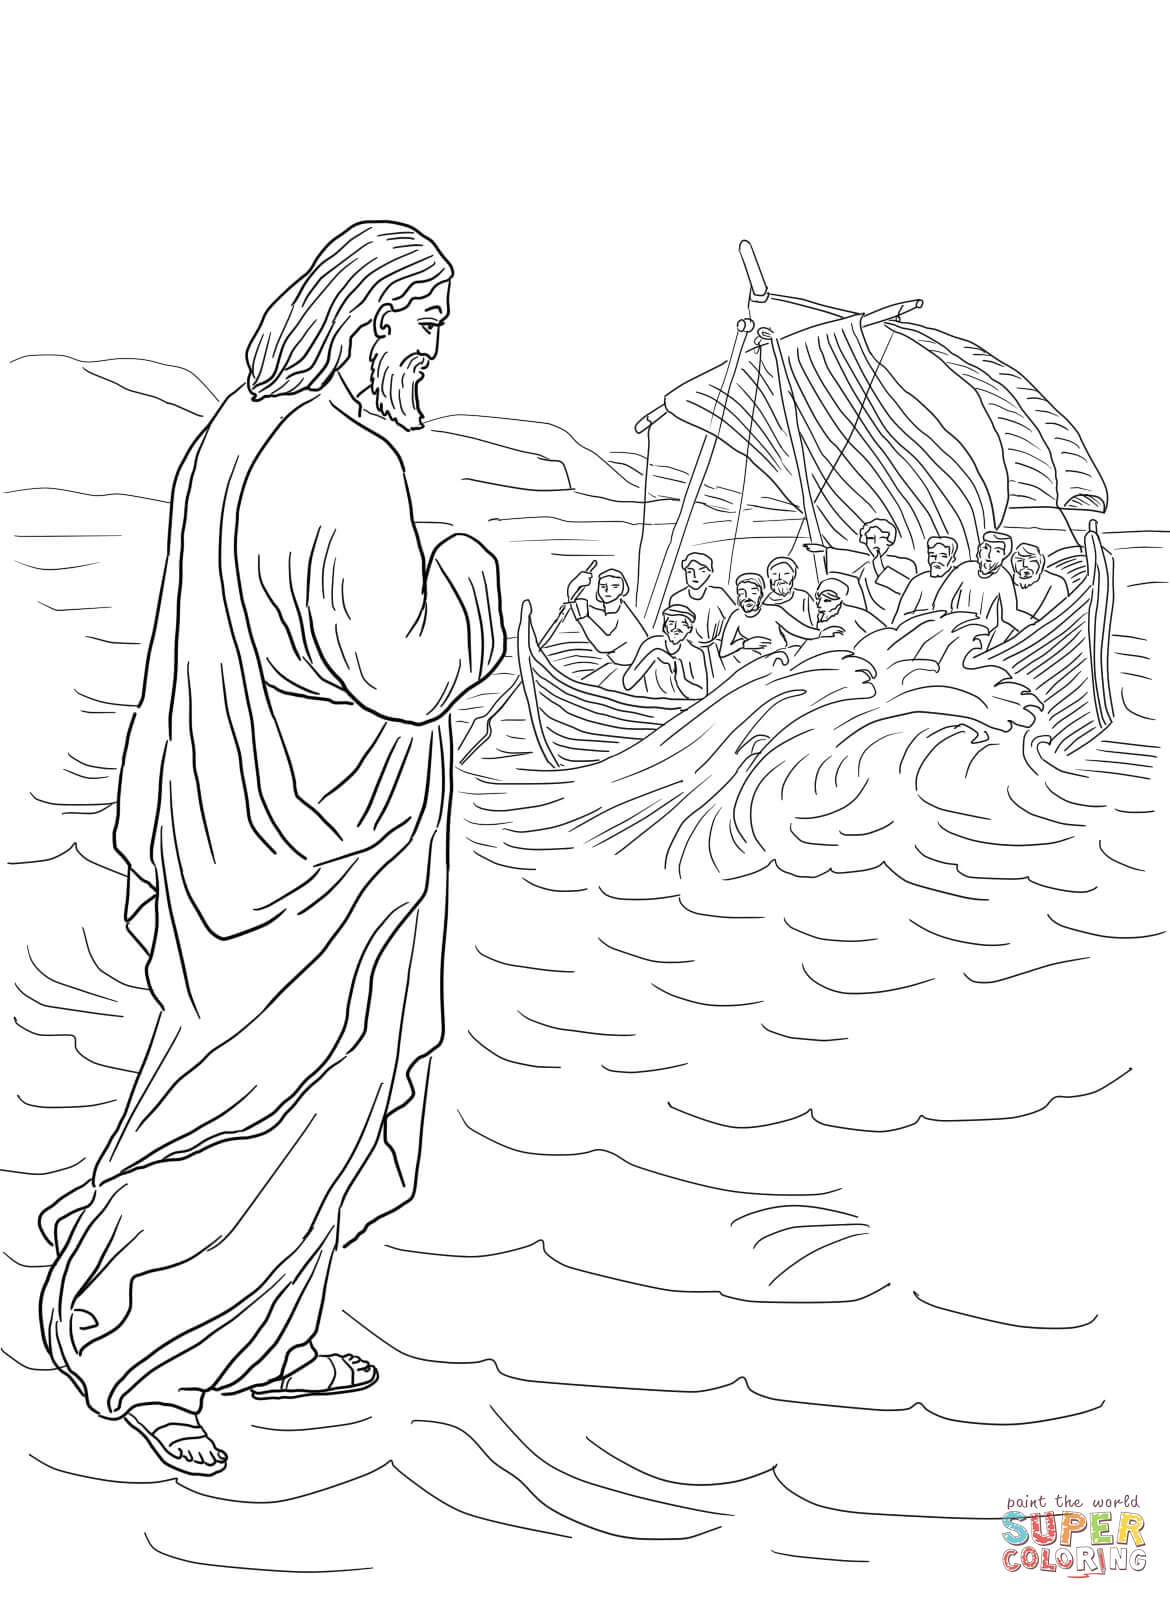 1170x1600 Peter Walks On Water Coloring Page Peter Walks On Water Coloring